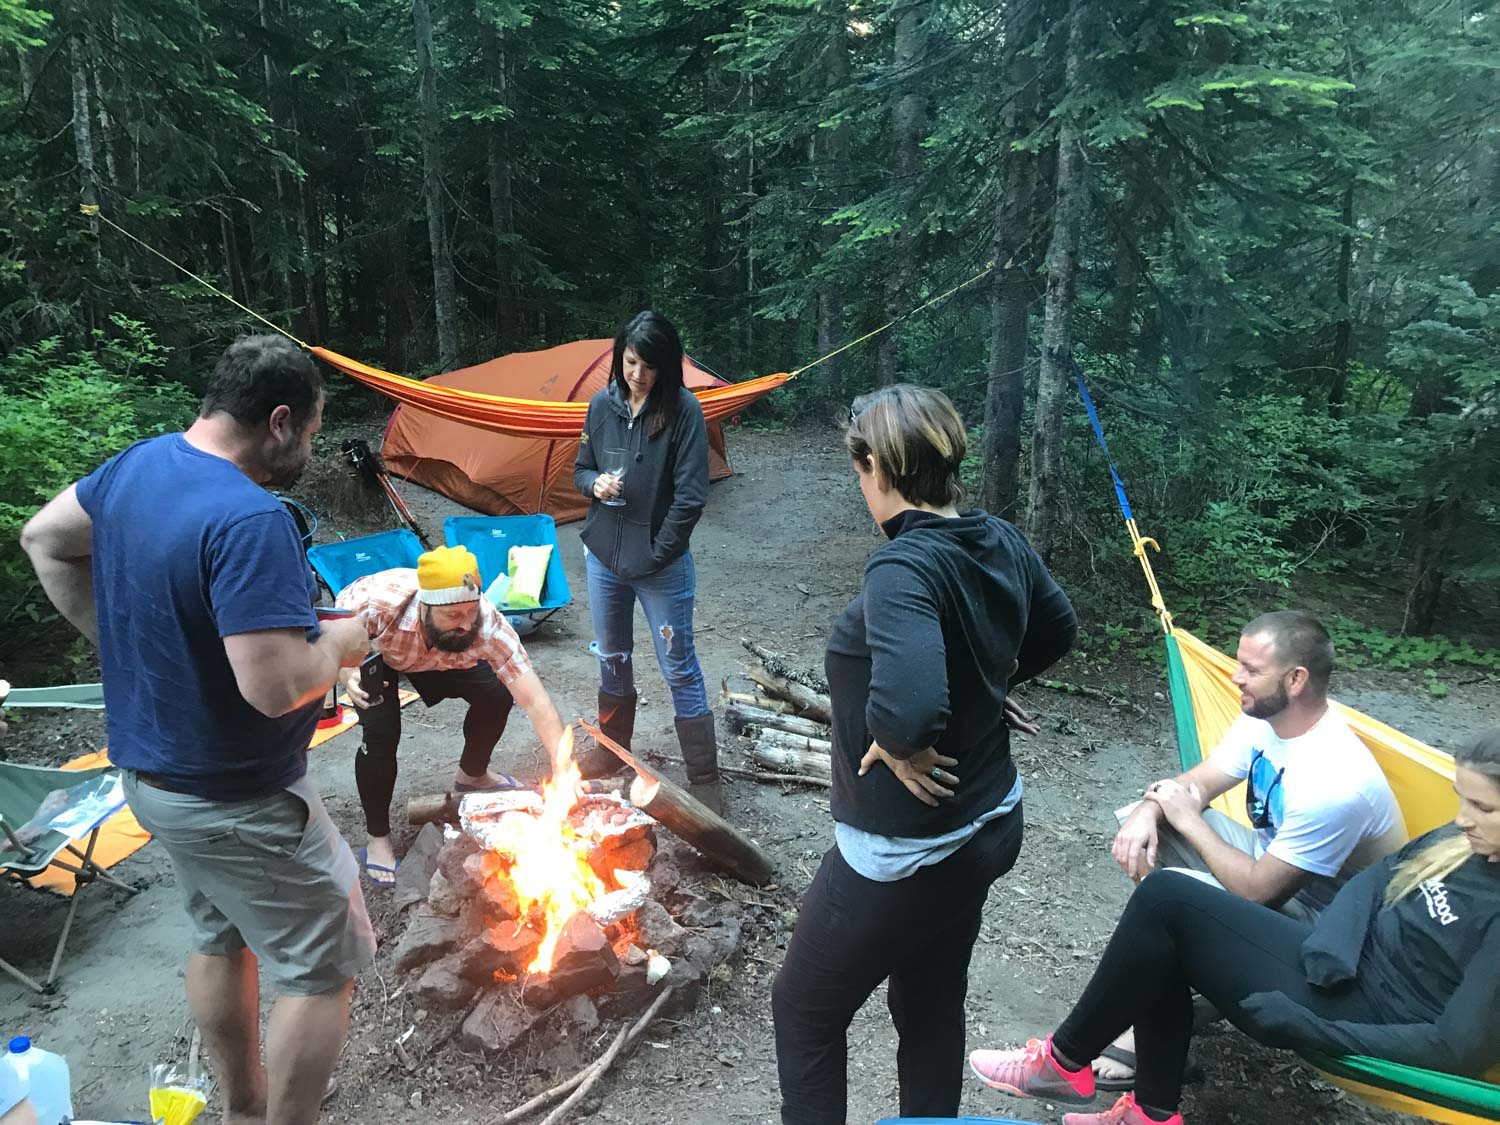 Climbers Bivouac Campground, Mount St. Helens Hikes - Loowit Trail Guide